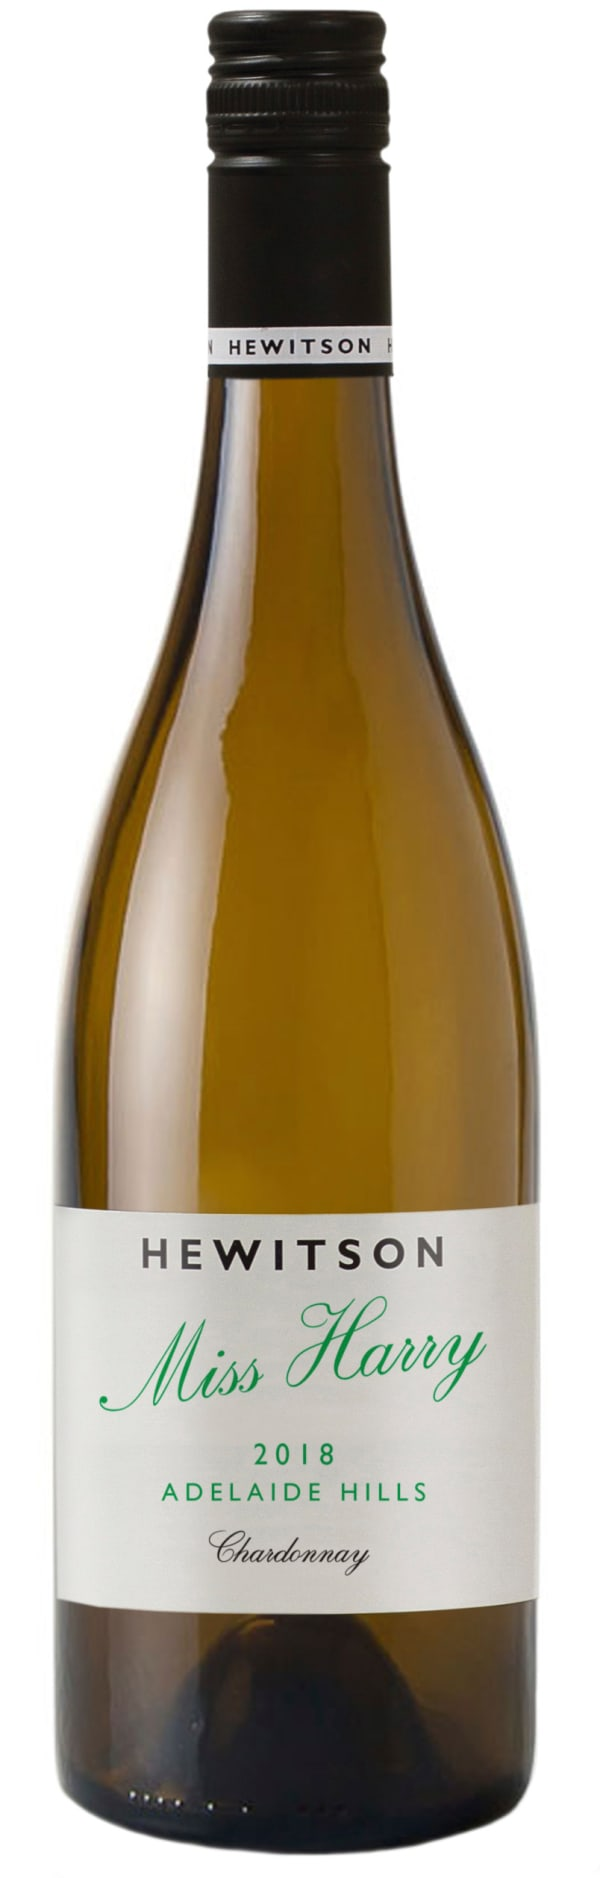 Hewitson Miss Harry Chardonnay 2018